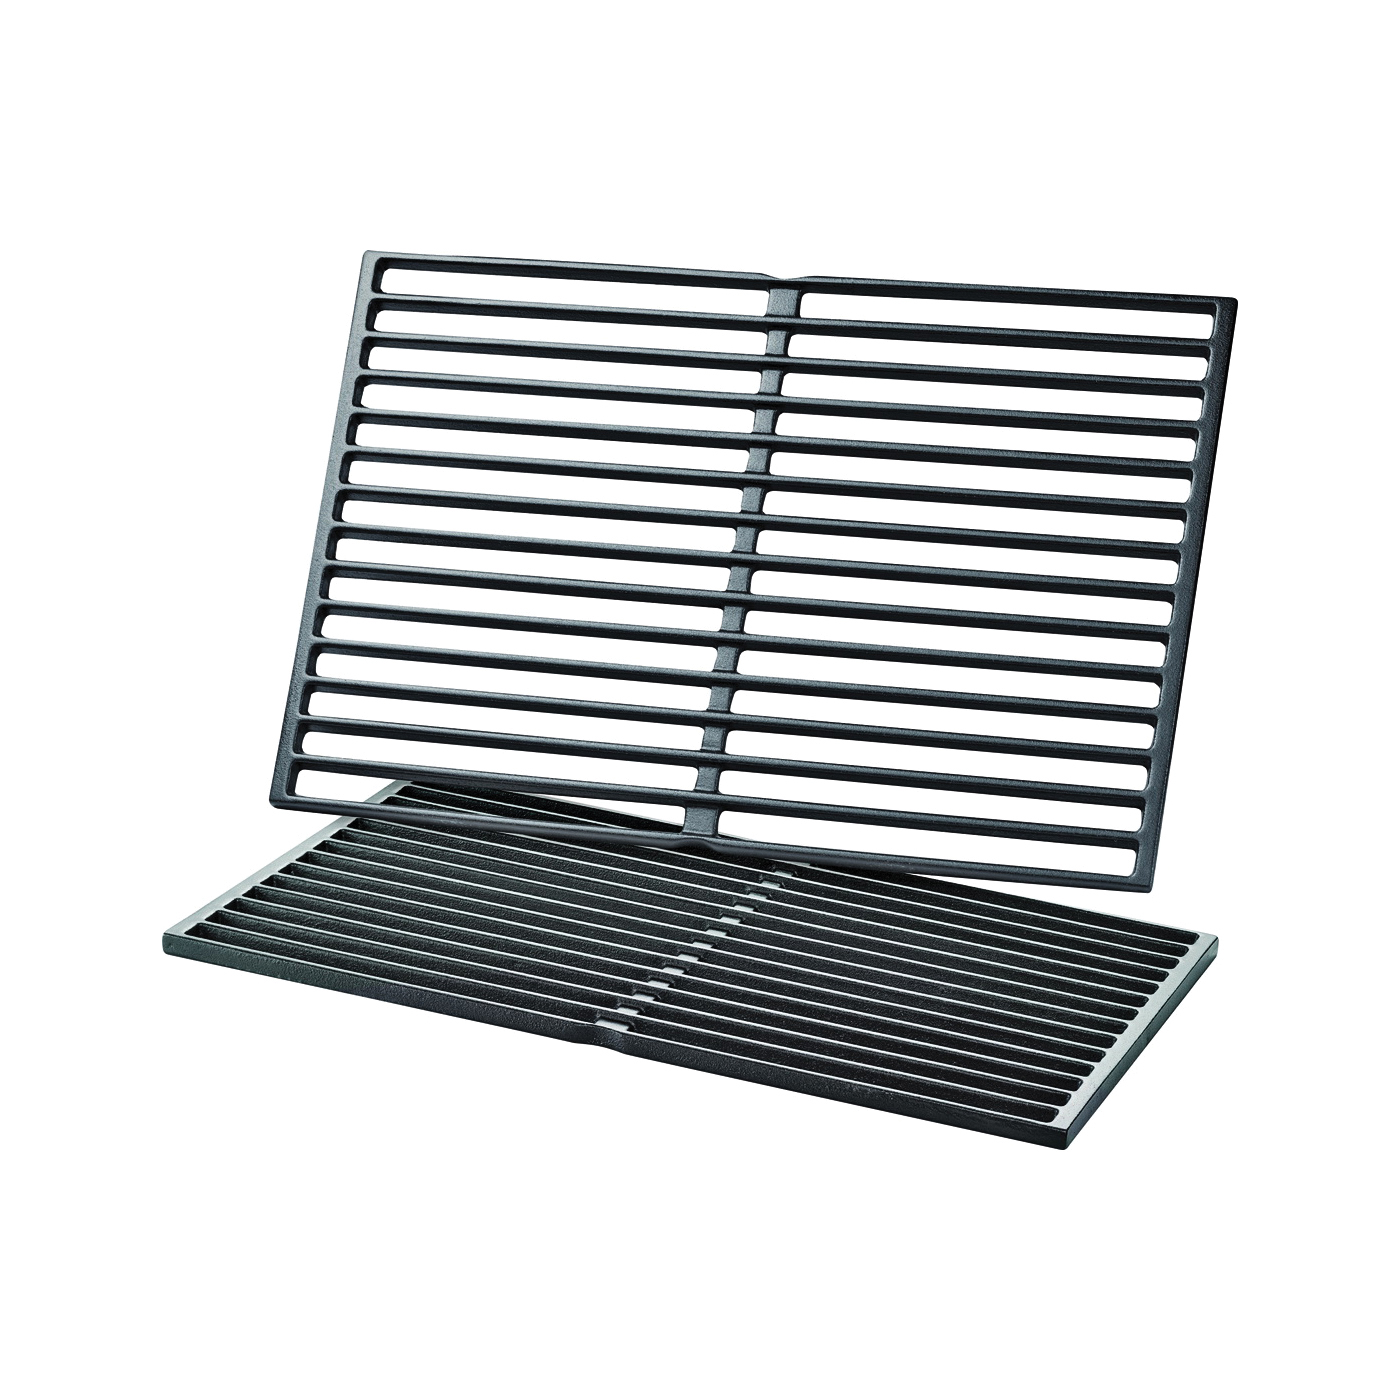 Picture of Weber 7524 Cooking Grate Set, 19-1/2 in L, 12-29/32 in W, Cast Iron, Enamel-Coated